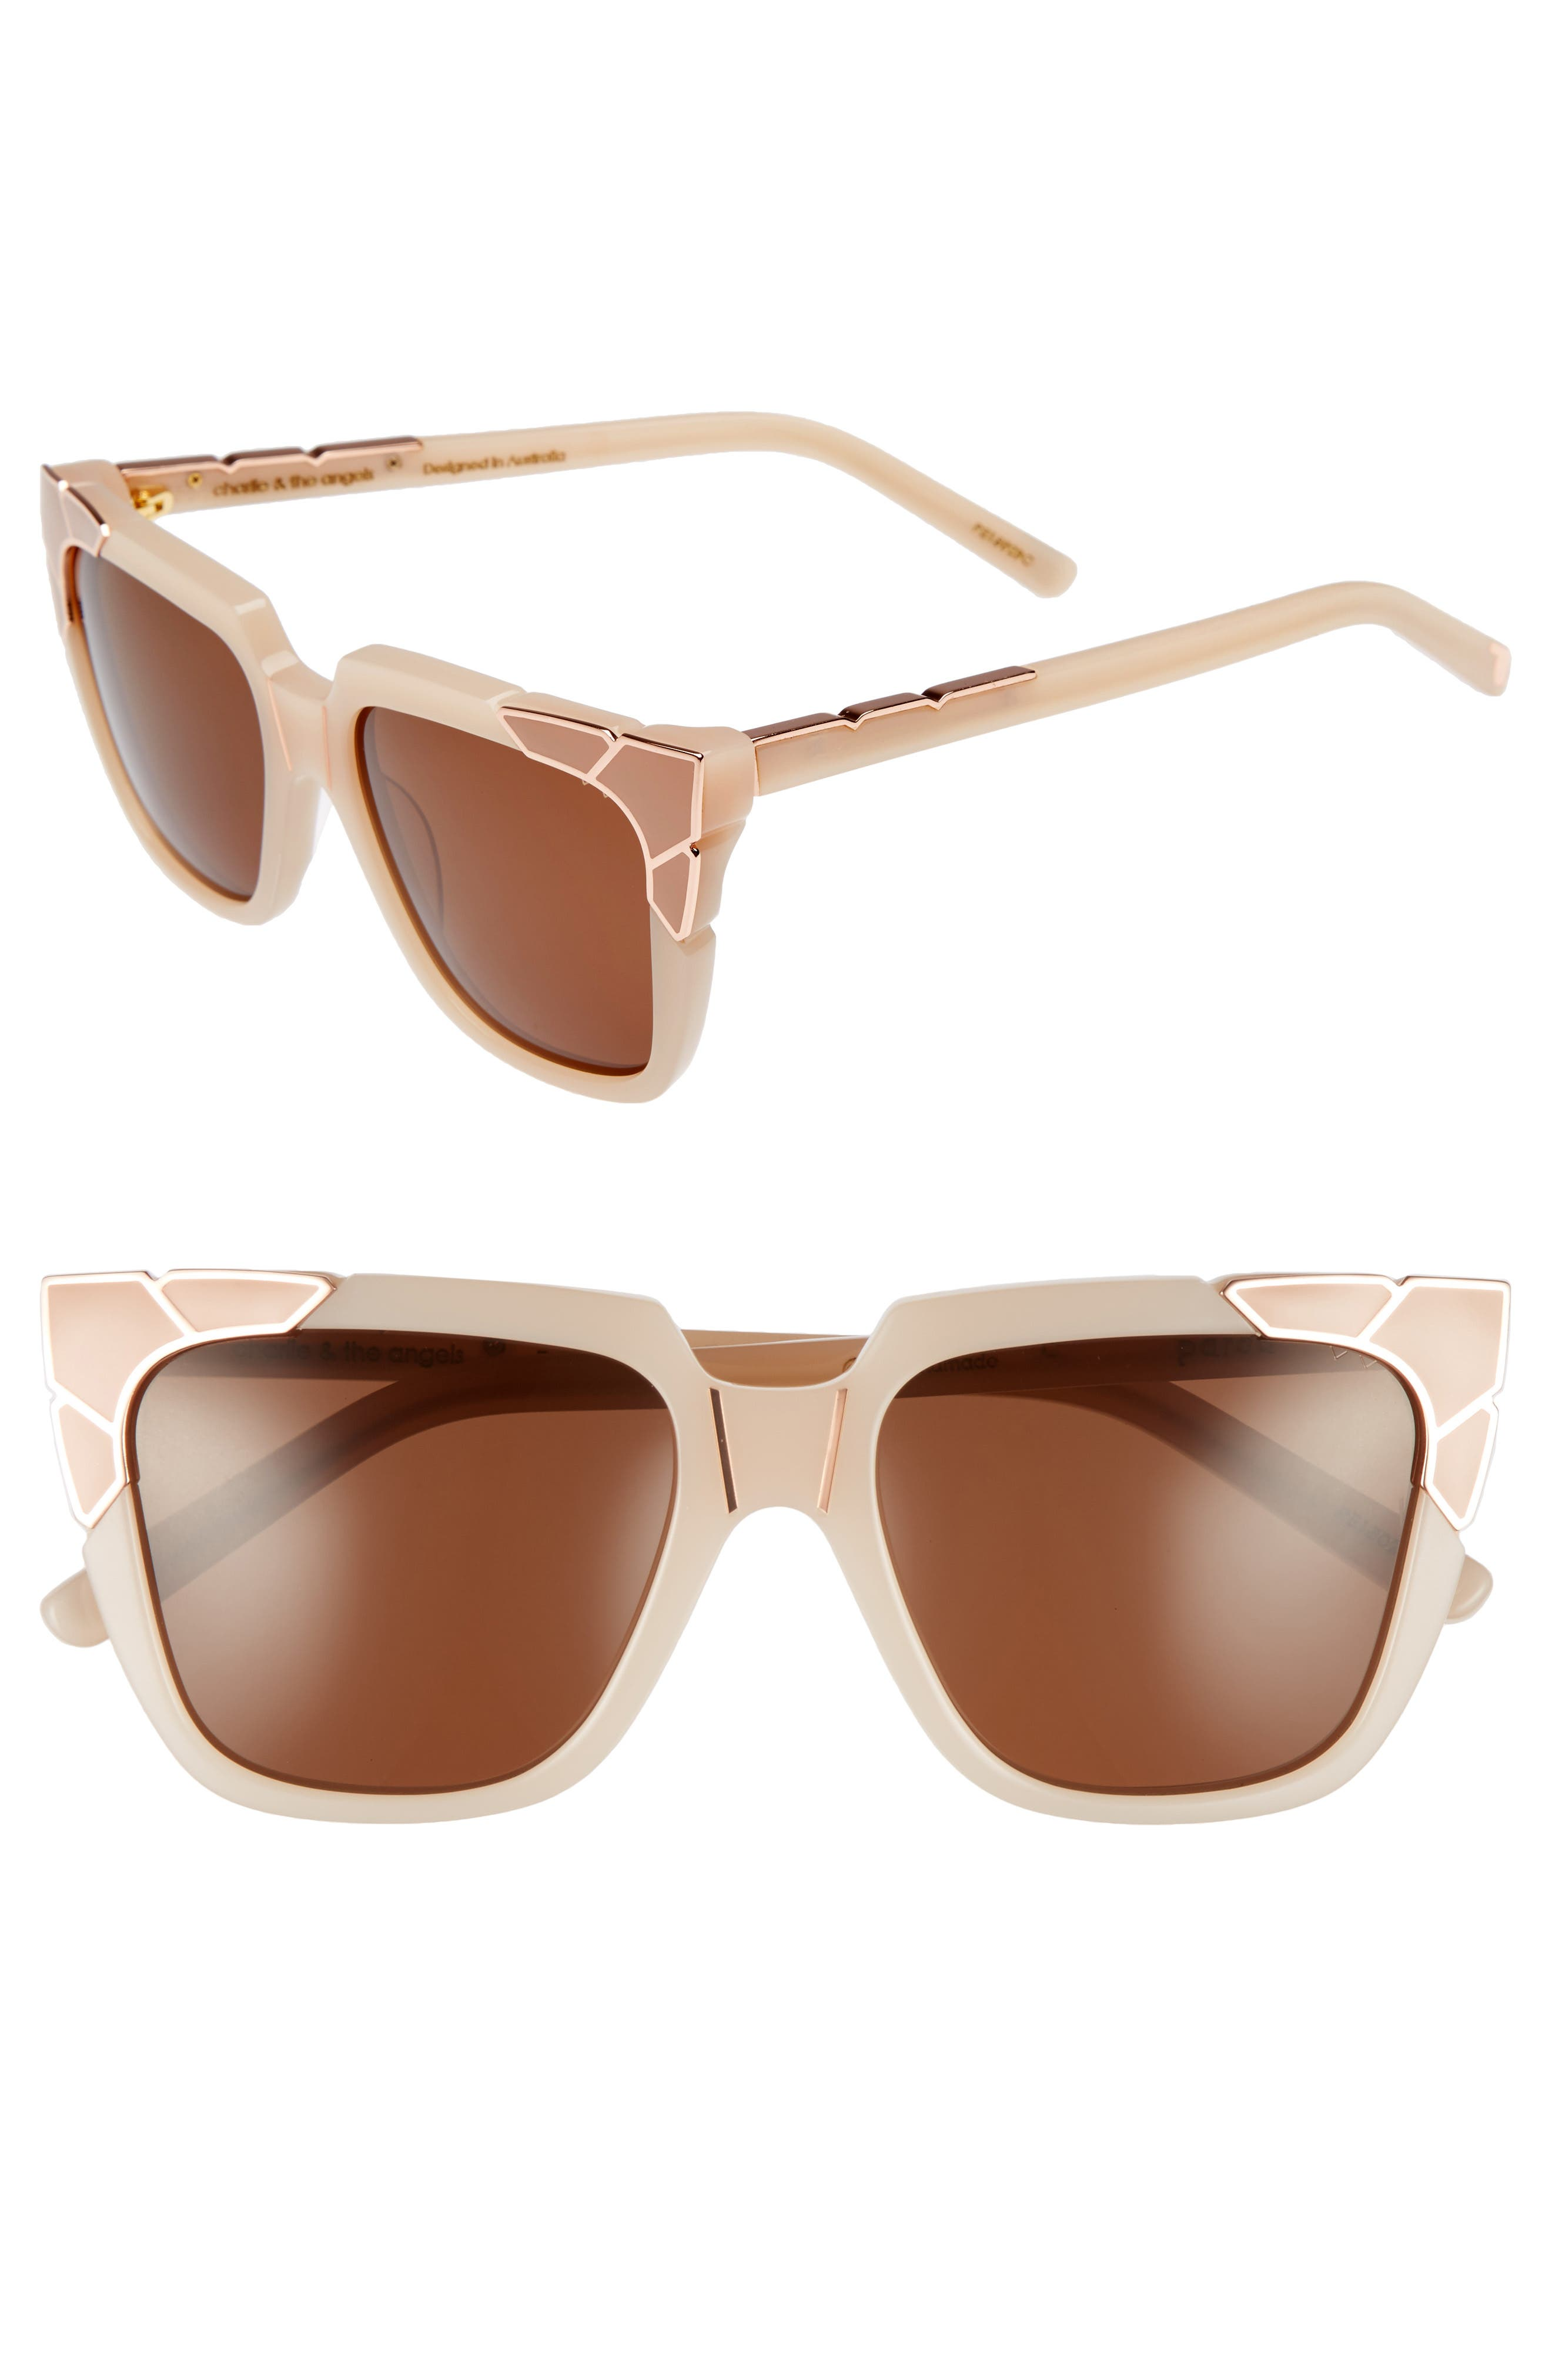 Charlie & the Angels 54mm Sunglasses,                         Main,                         color, 800